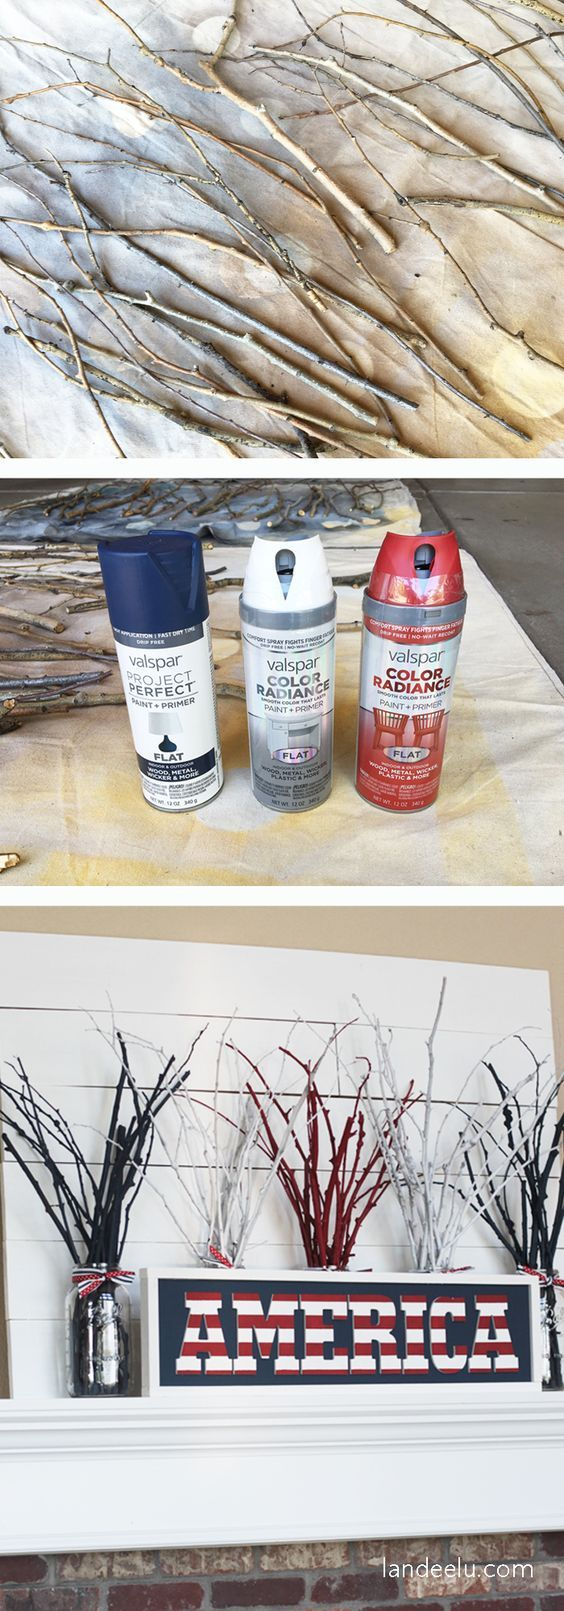 "Create ""fireworks"" for your 4th of July DIY mantel decor this Independence Day!"